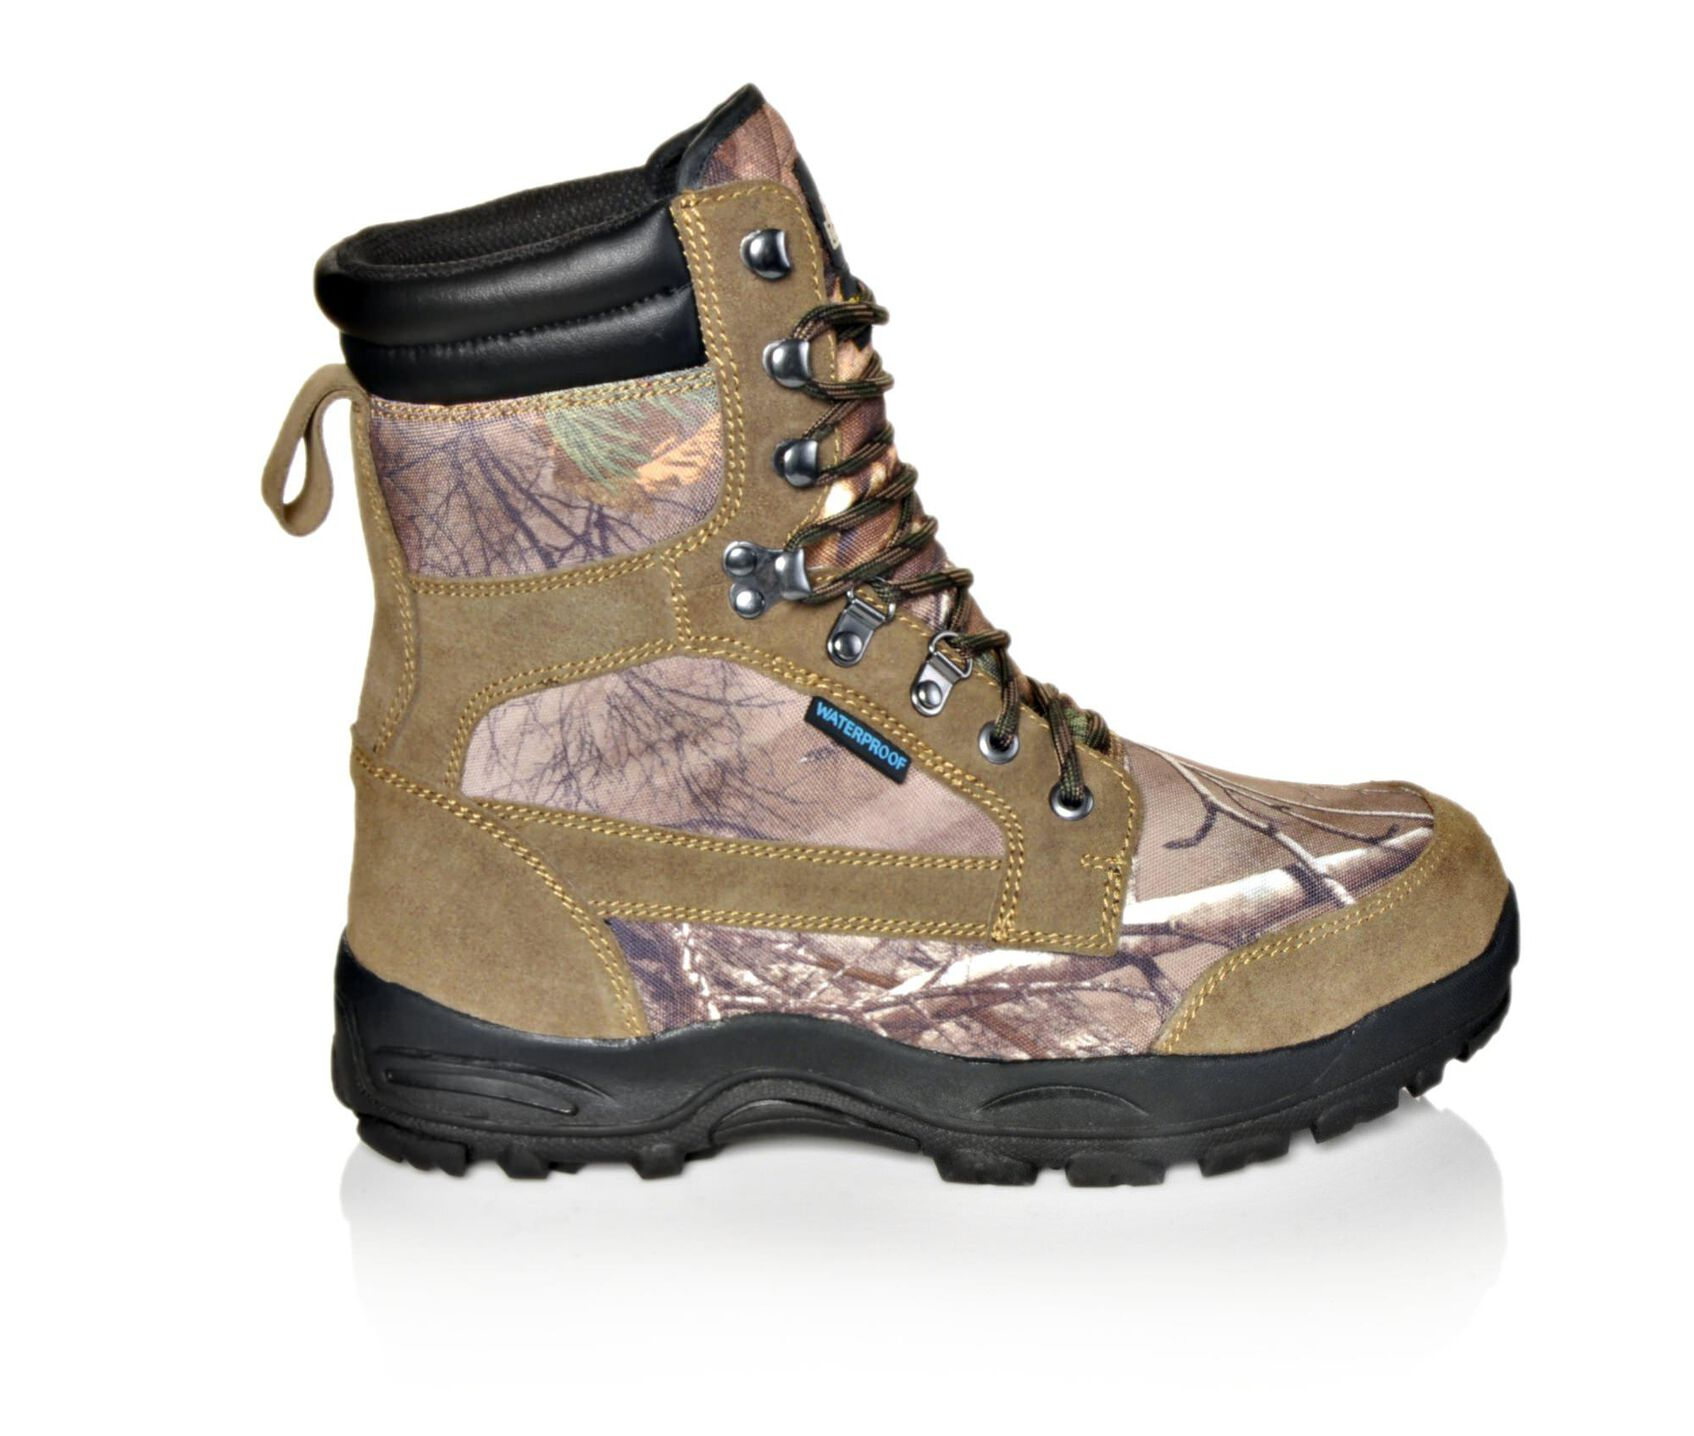 18559525c13 Men's Itasca Sonoma Big Buck 800 Insulated Boots